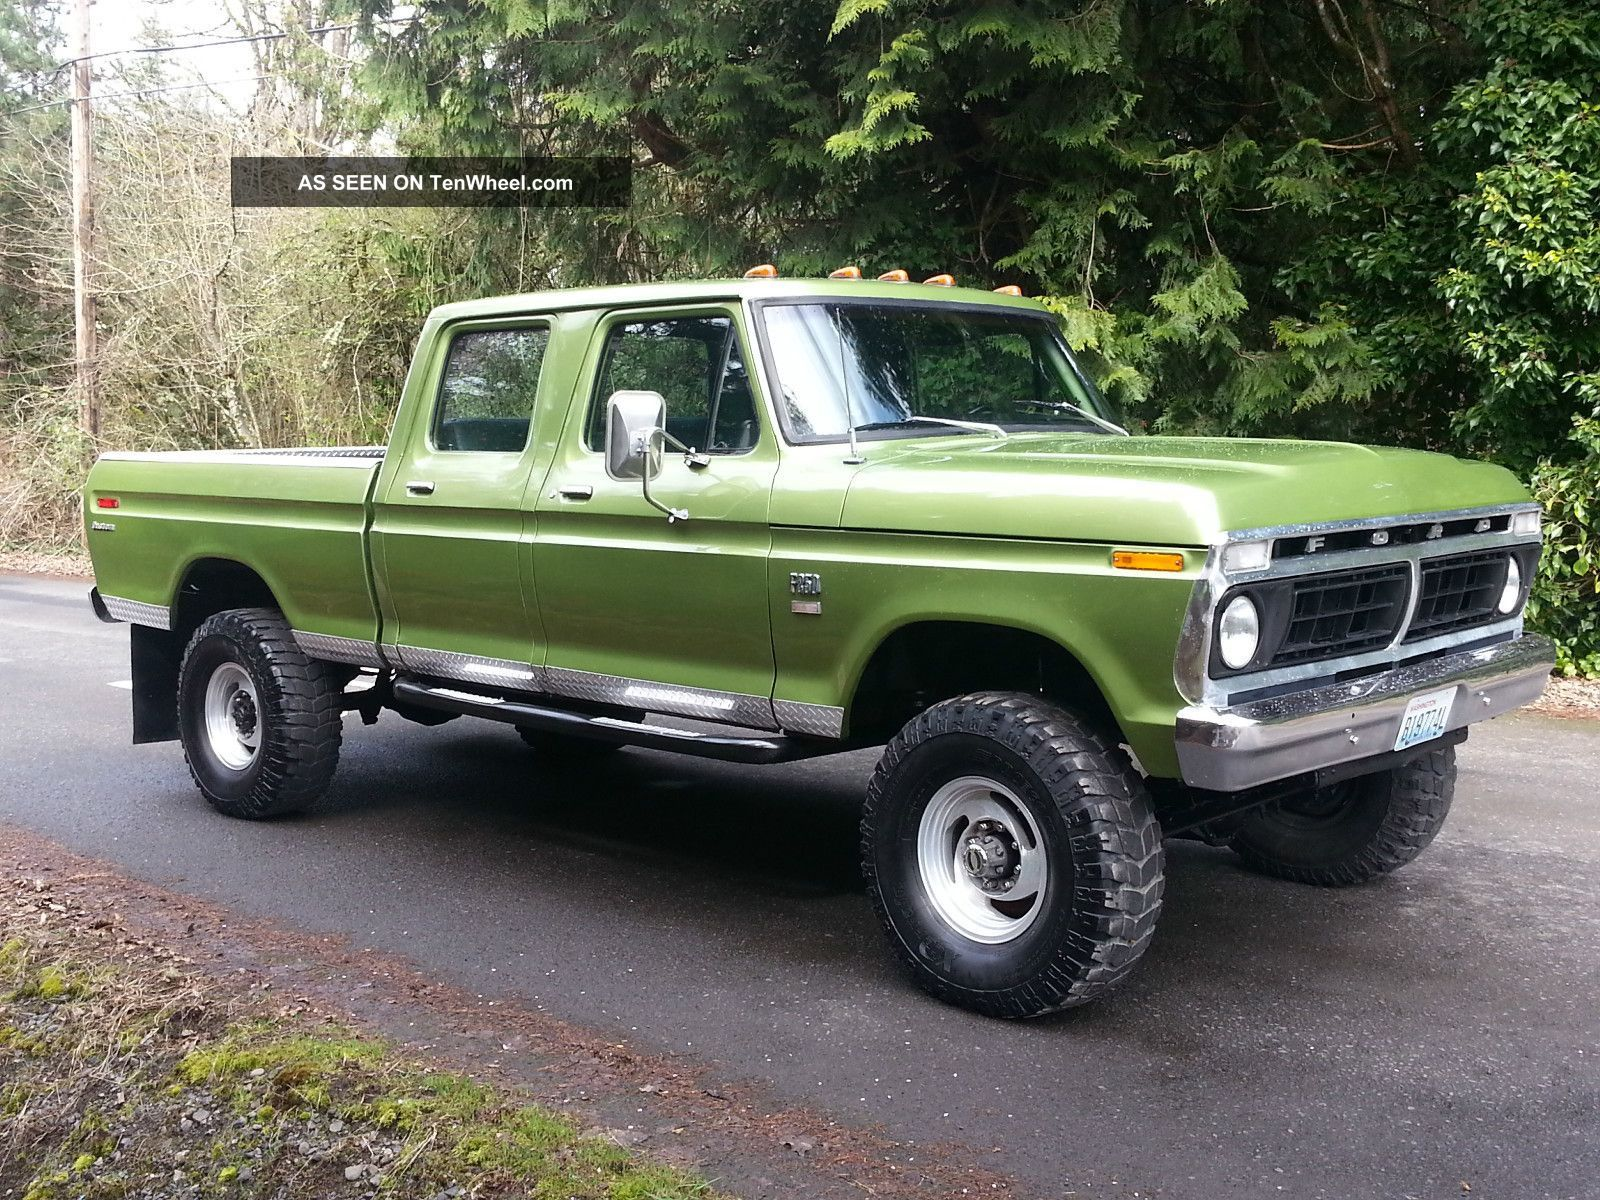 1973 Ford F250 Highboy Crew Cab Ford Trucks 79 Ford Truck Classic Ford Trucks